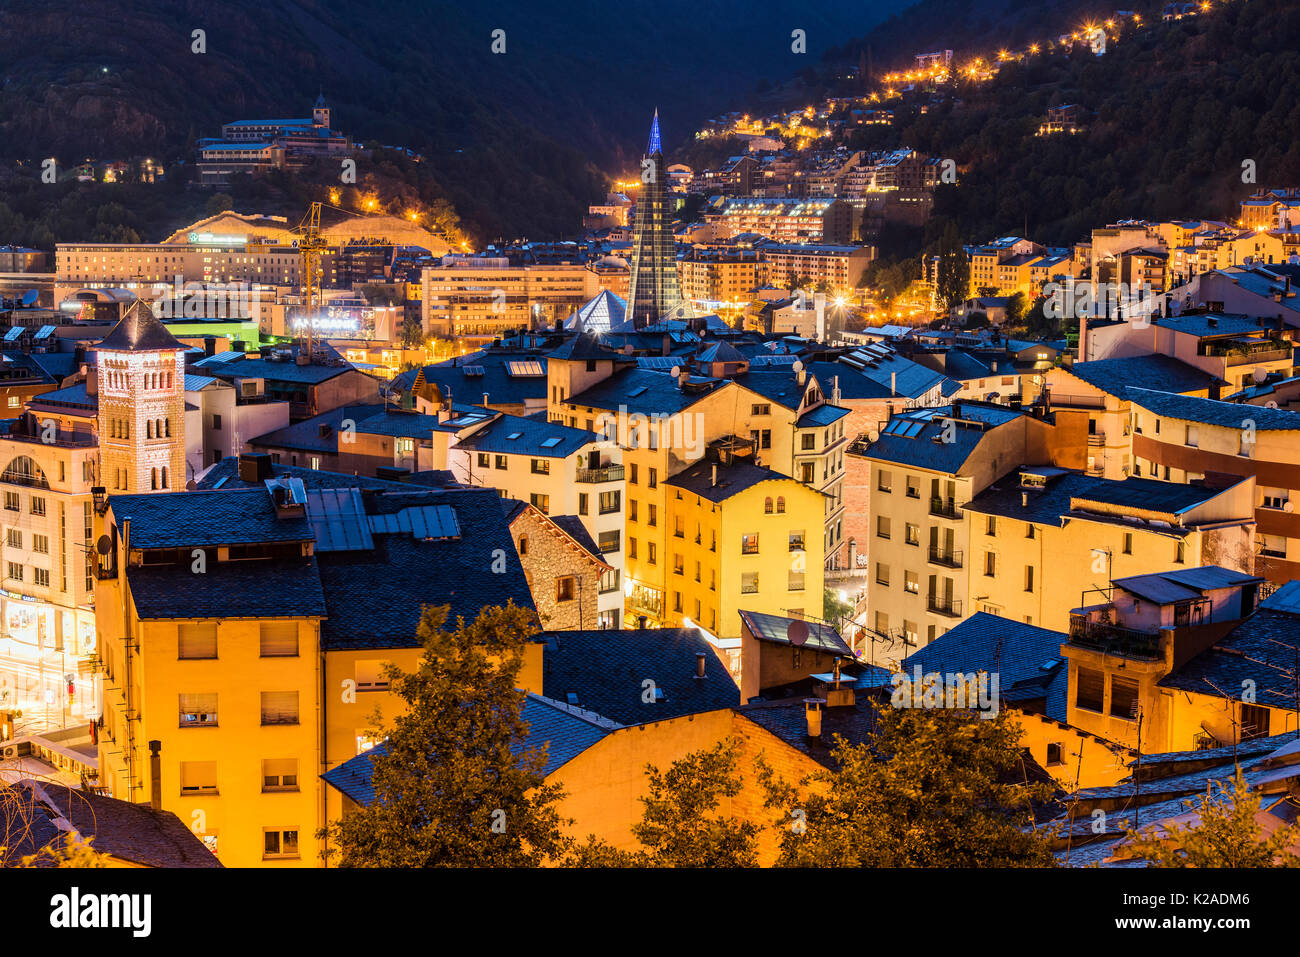 City skyline at night, Andorra La Vella, Andorra - Stock Image